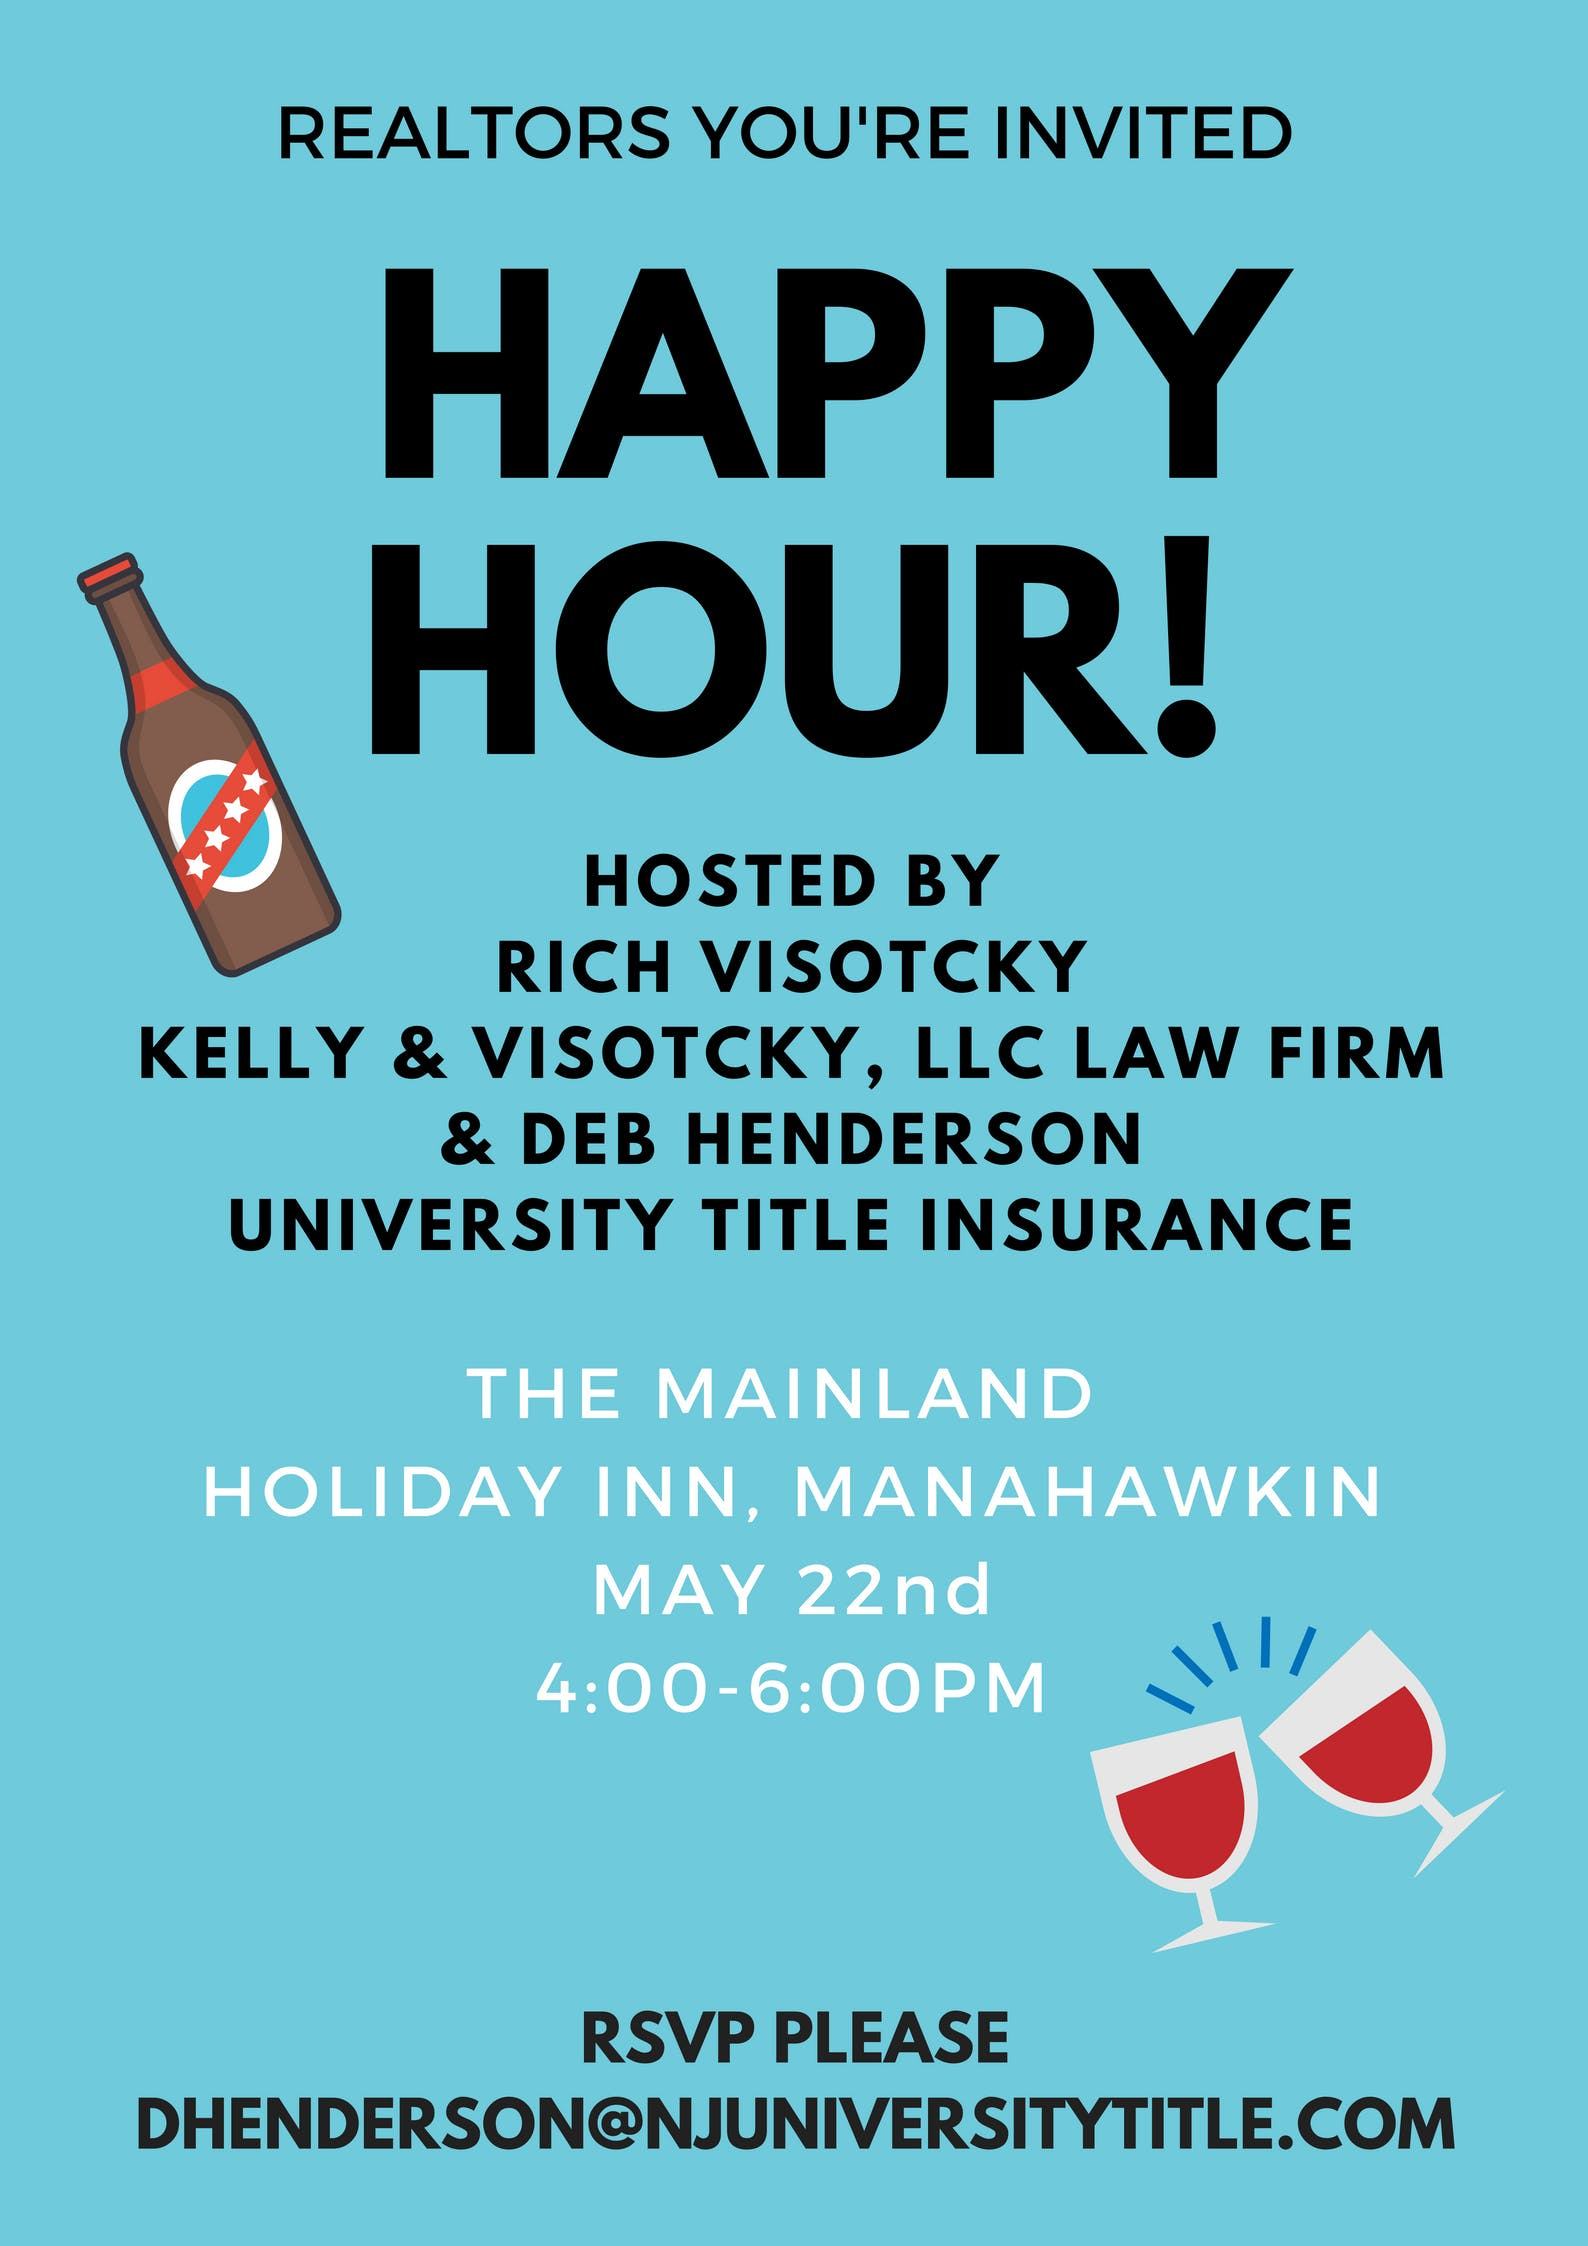 Free Realtor Happy Hour at the Mainland